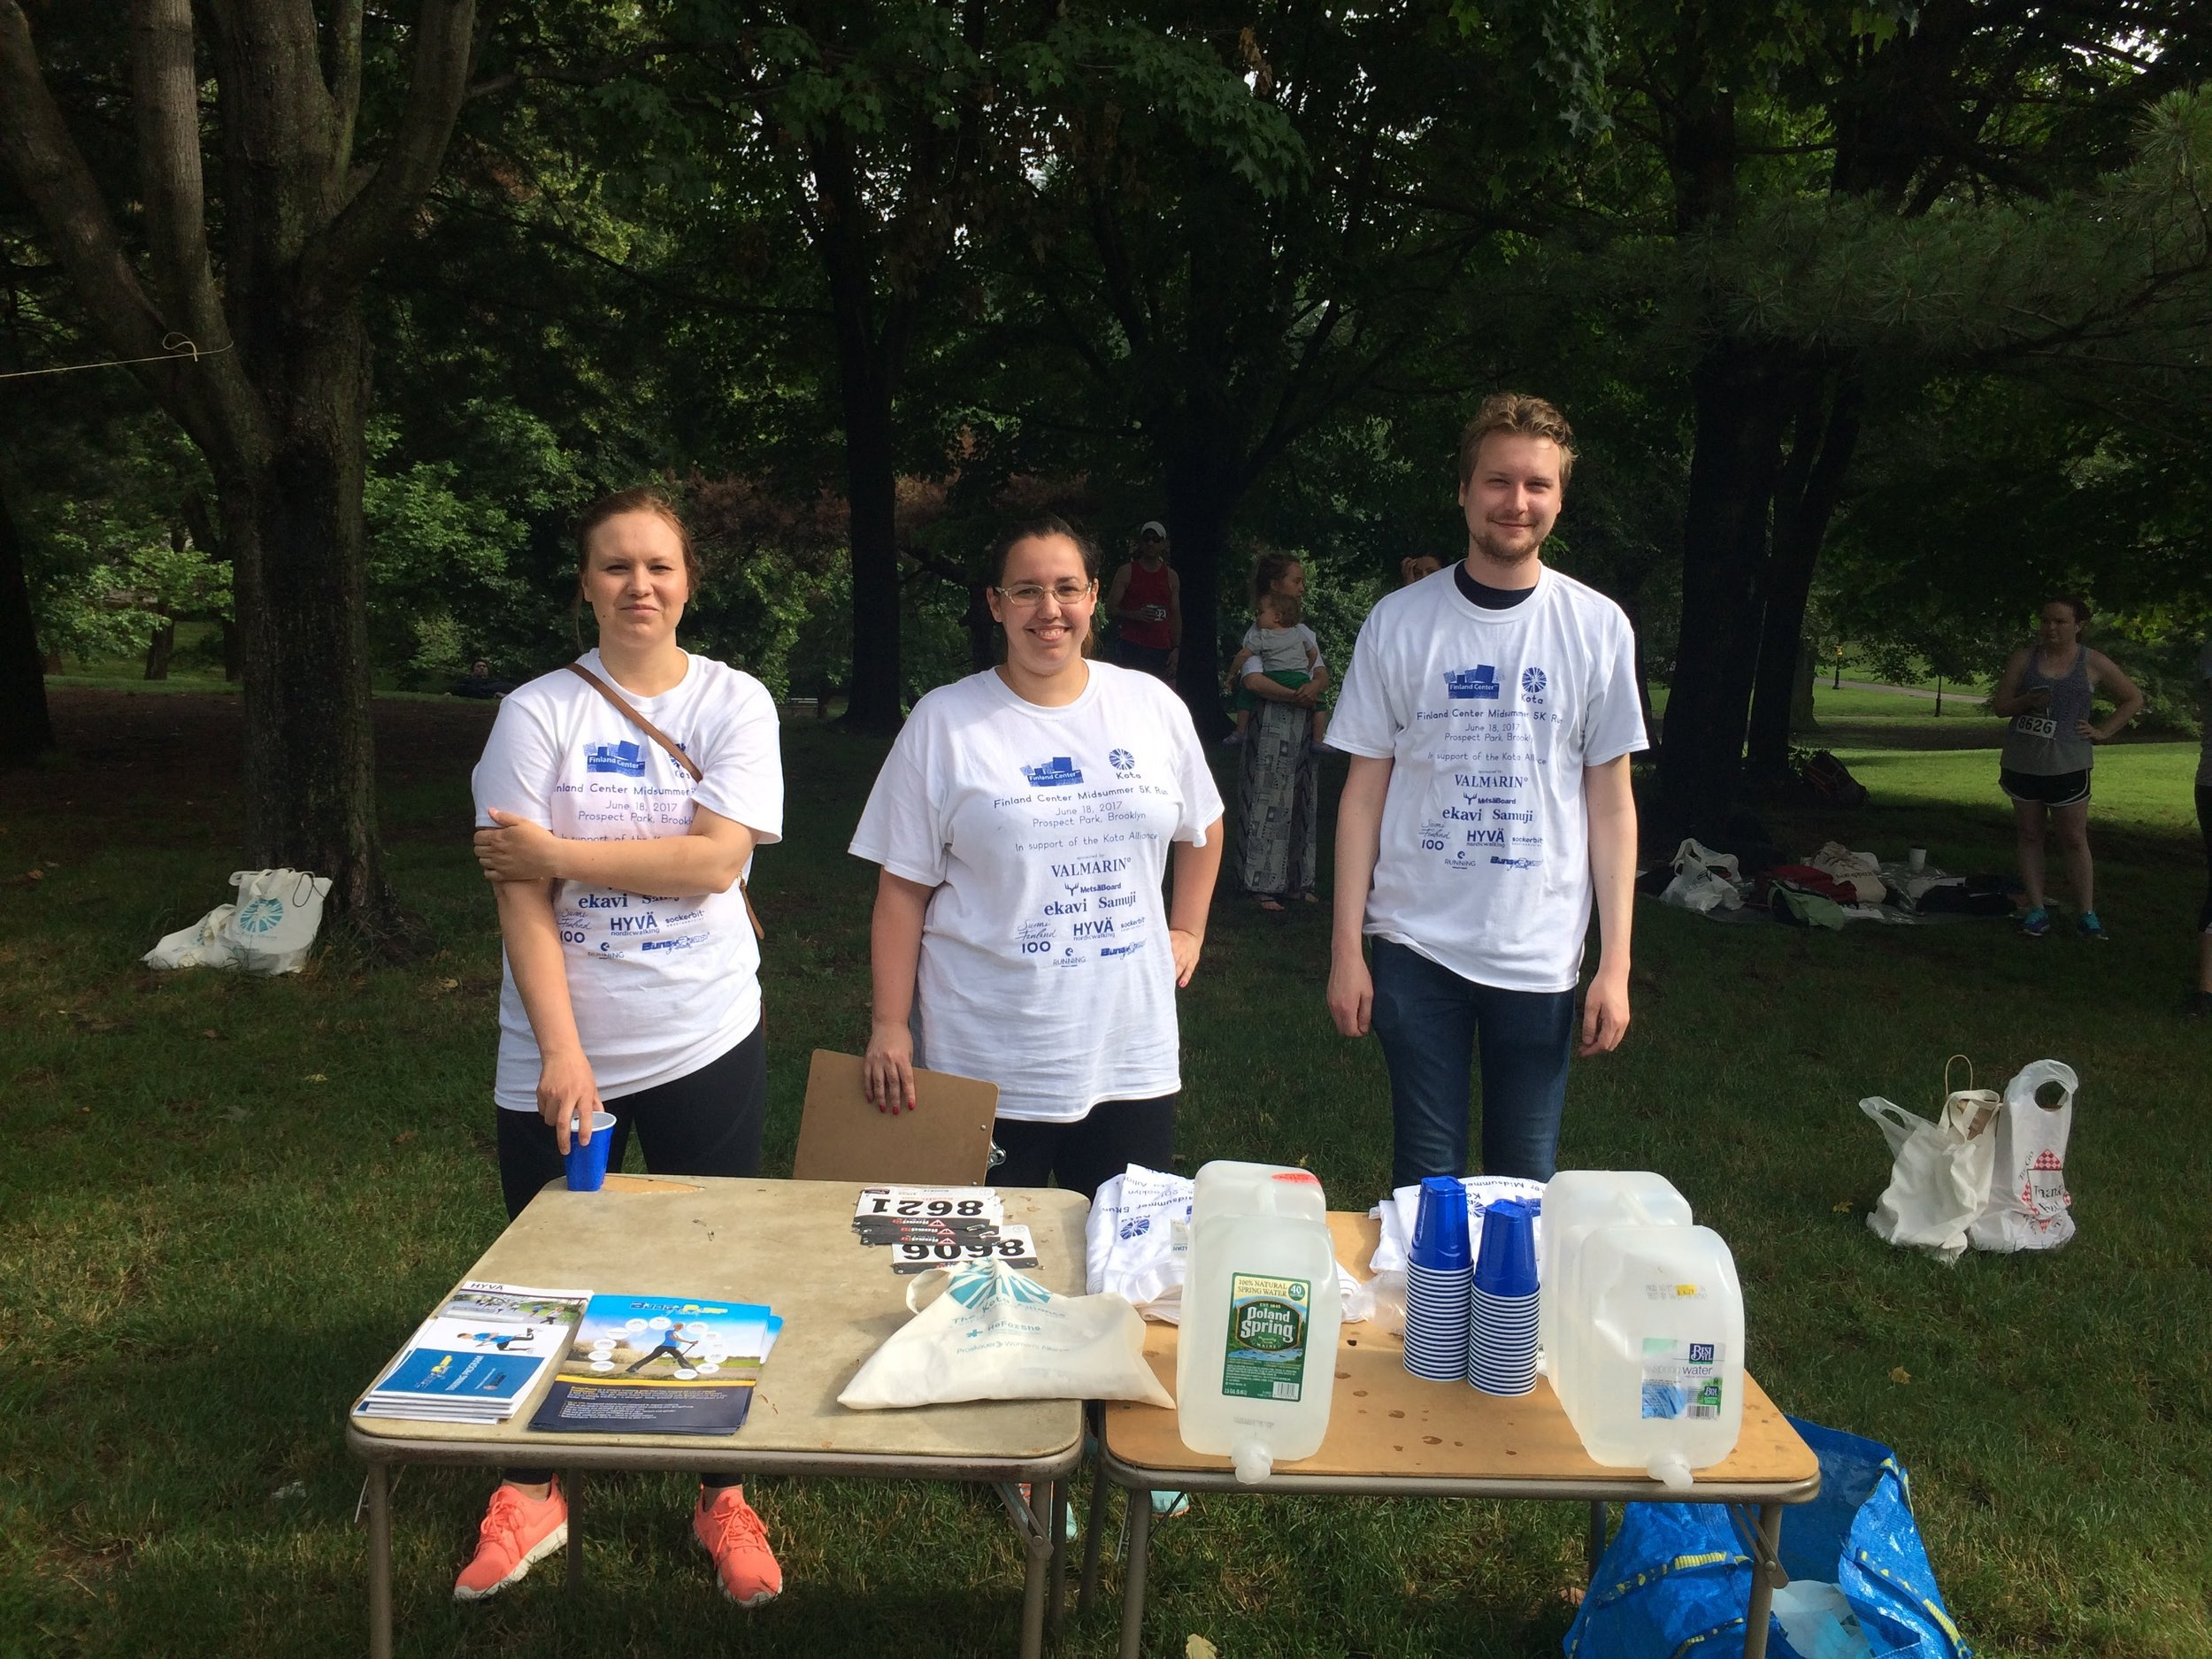 Our happy volunteers ready to serve some refreshments for the participants of our annual Midsummer 5K Run in Porspect Park, Brooklyn.